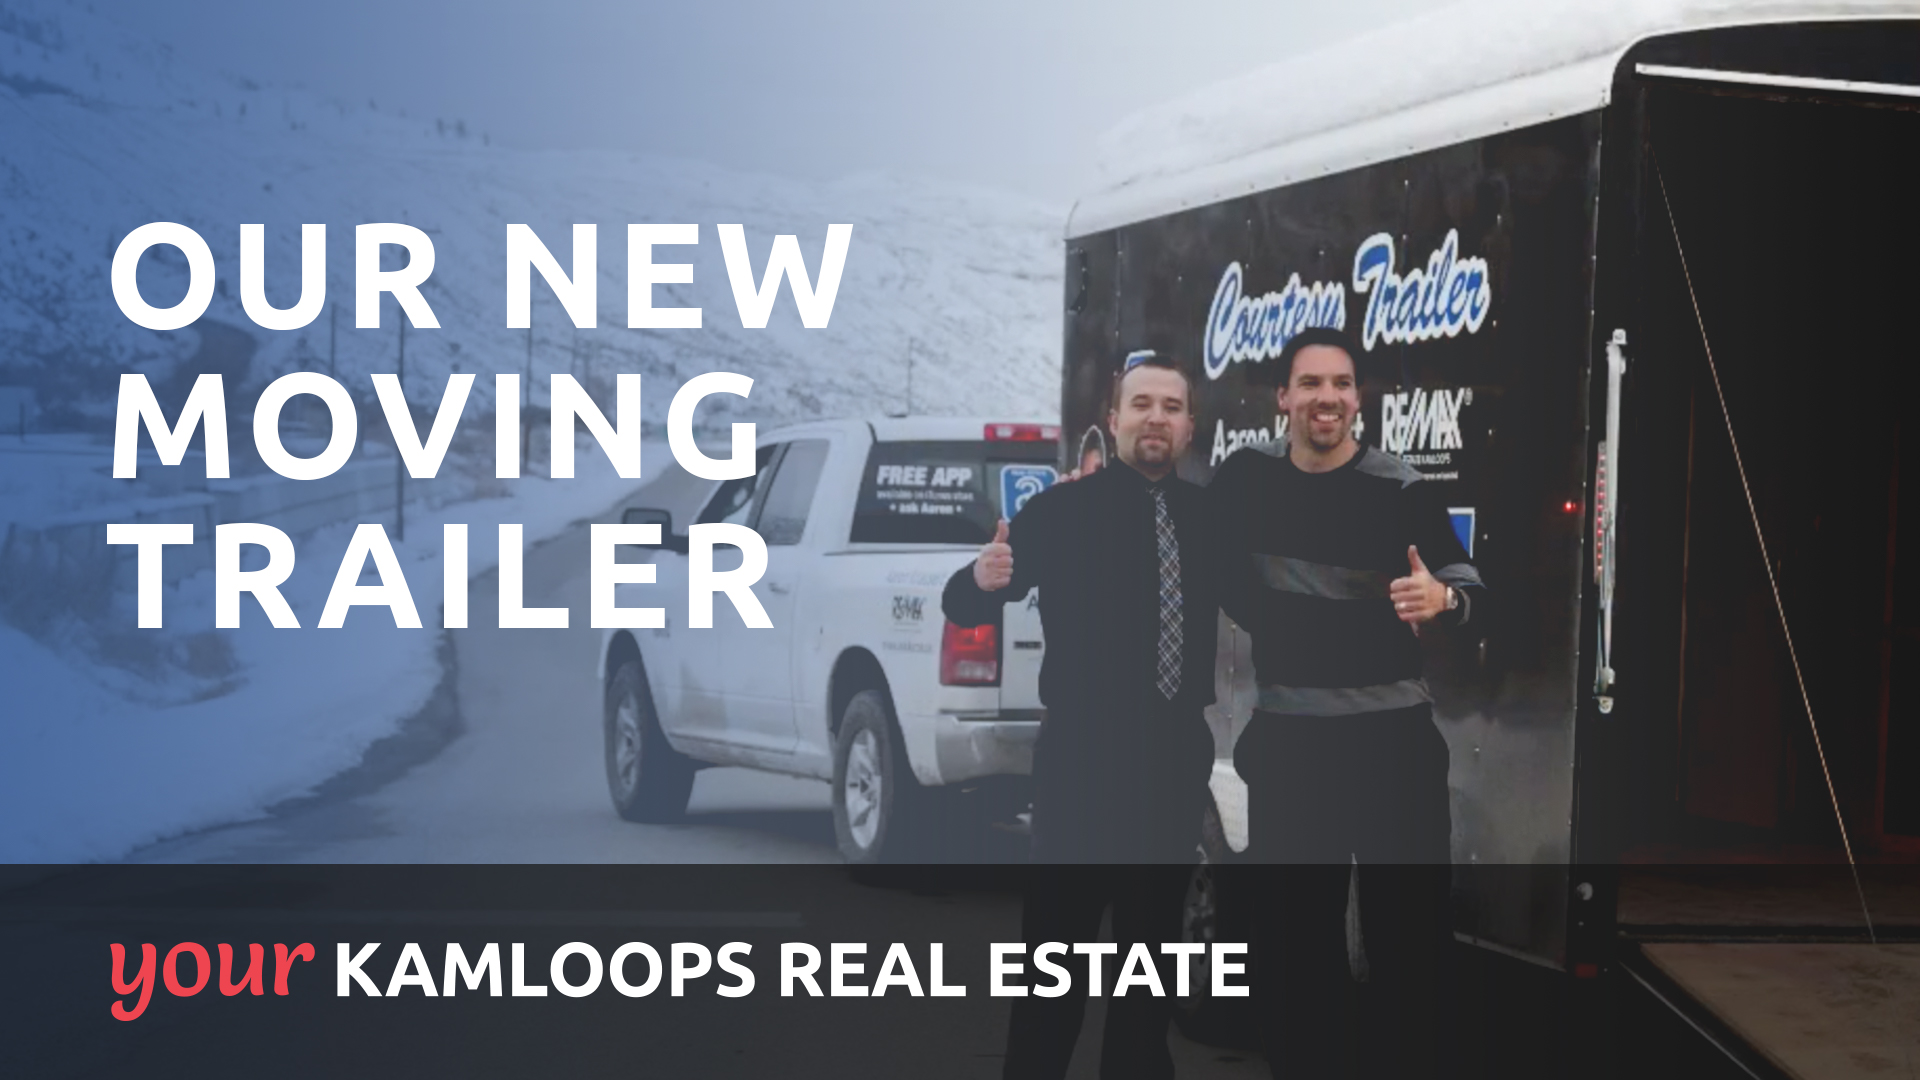 Our New Moving Trailer